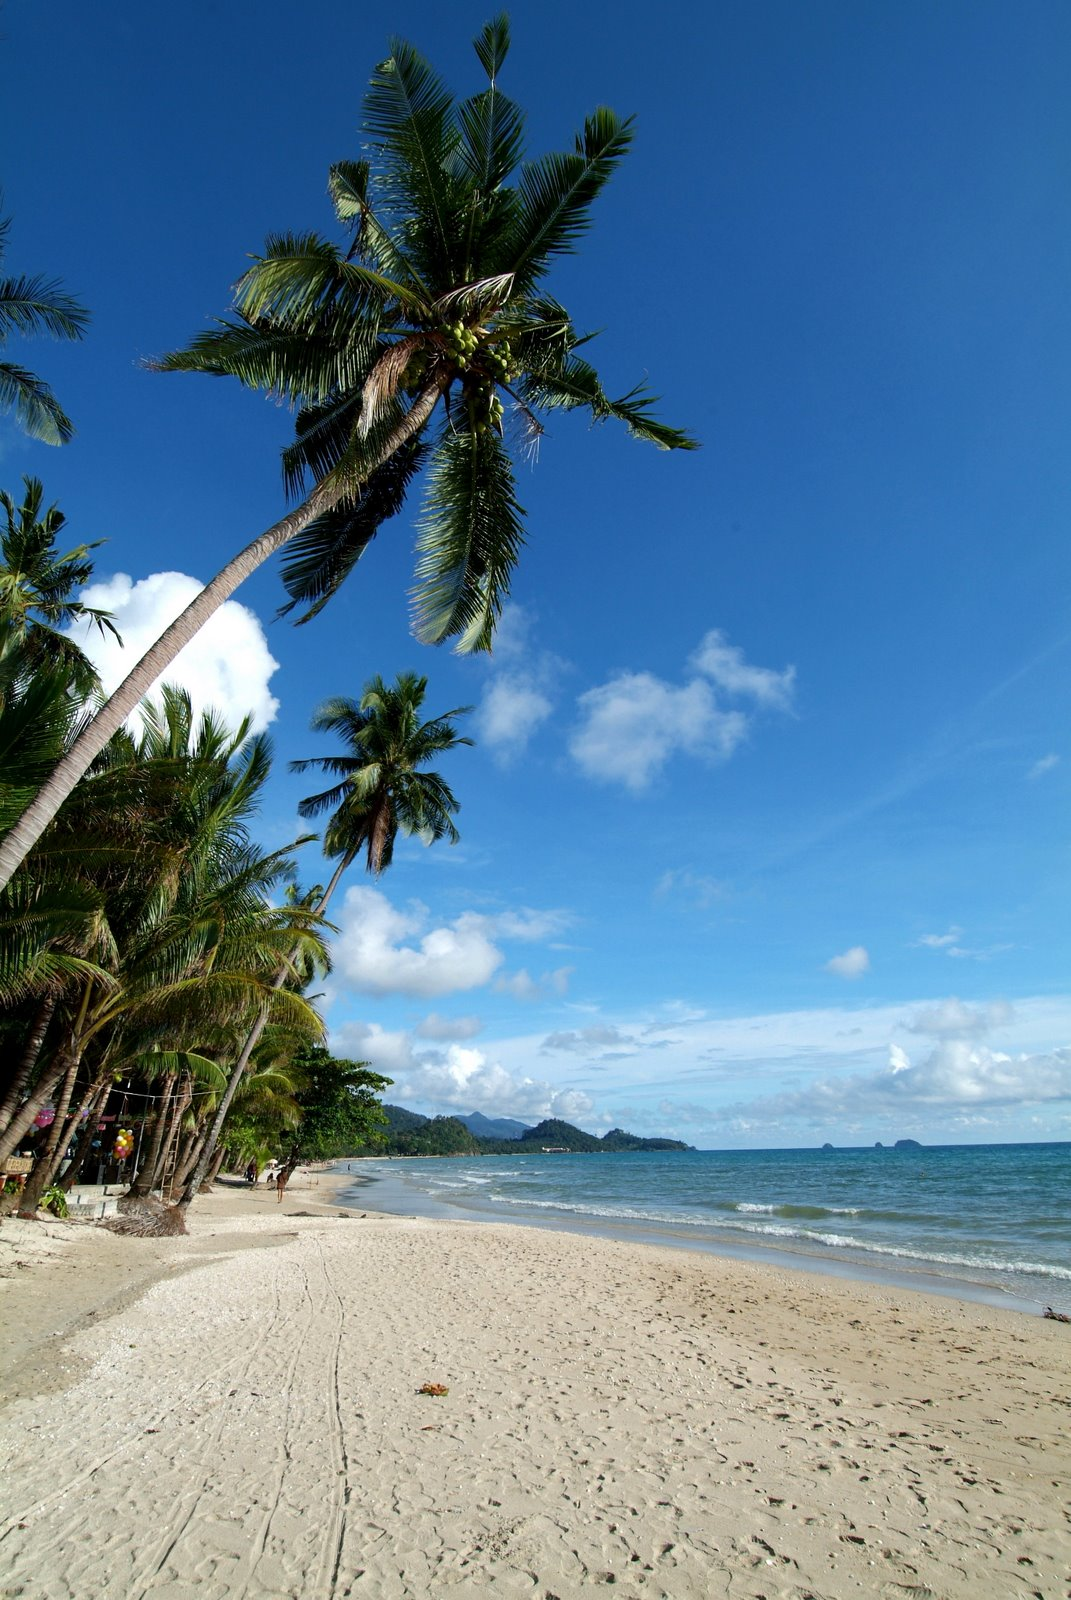 Kohchang resorts booking hotels booking online cheap for White sand beach vacations